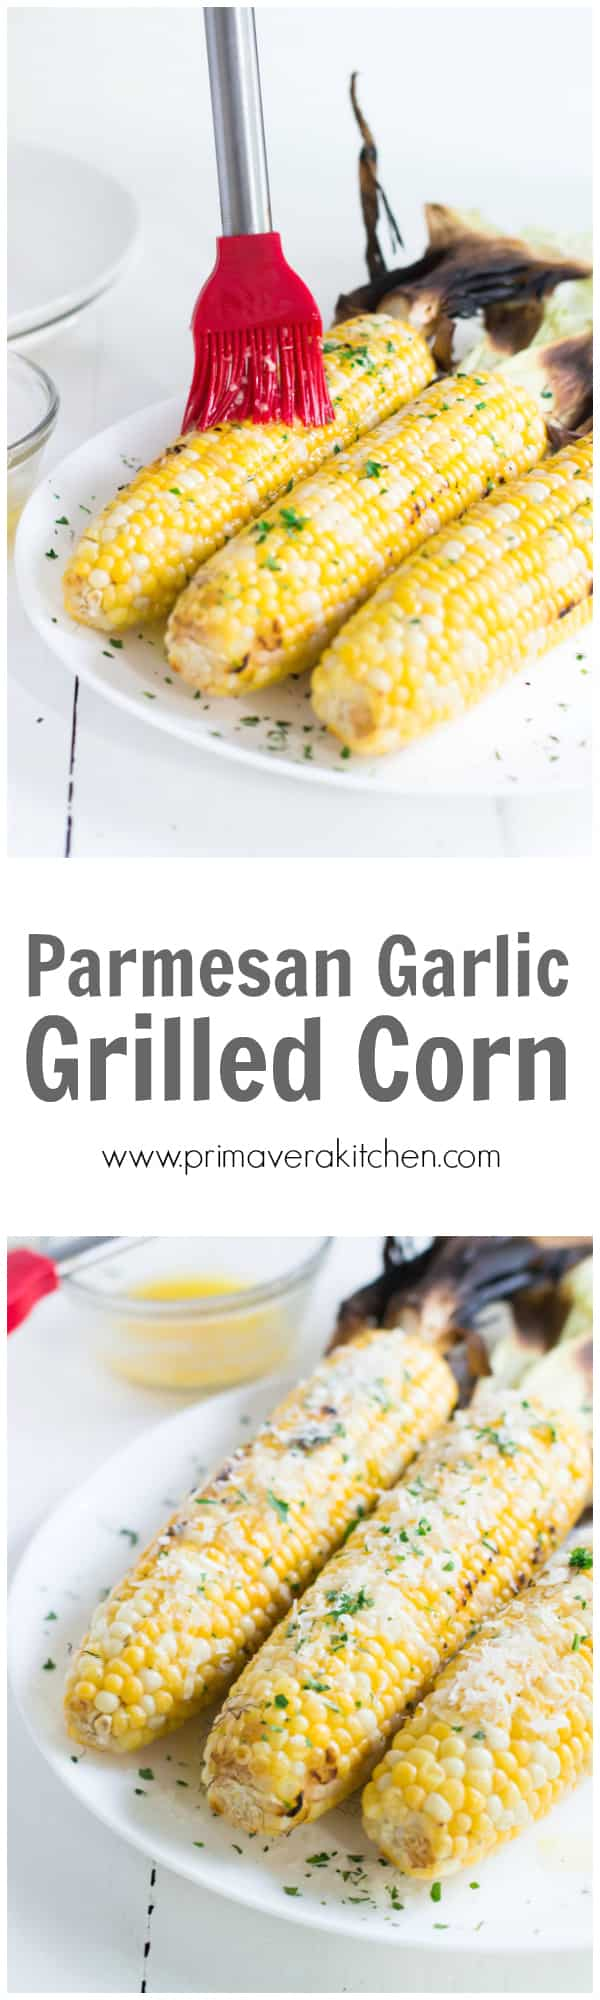 Parmesan Garlic Grilled Corn - This Parmesan Garlic Grilled Corn is juicy, tender, super flavourful and easy to make. Enjoy this favourite summer side dish!